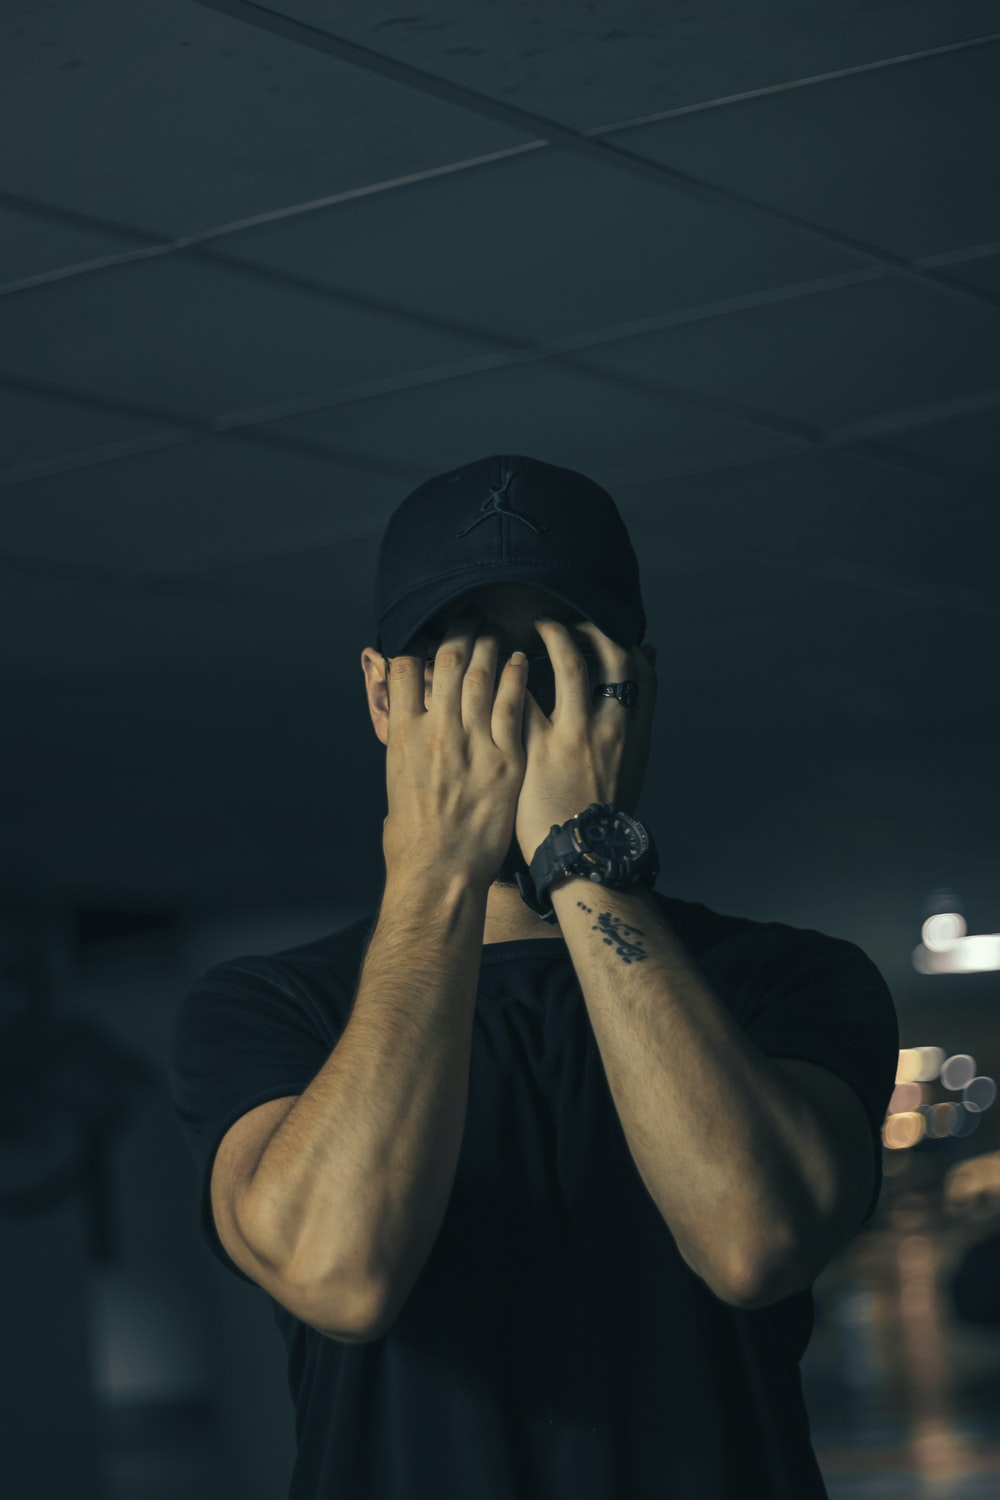 man in black crew neck t-shirt covering face with hands